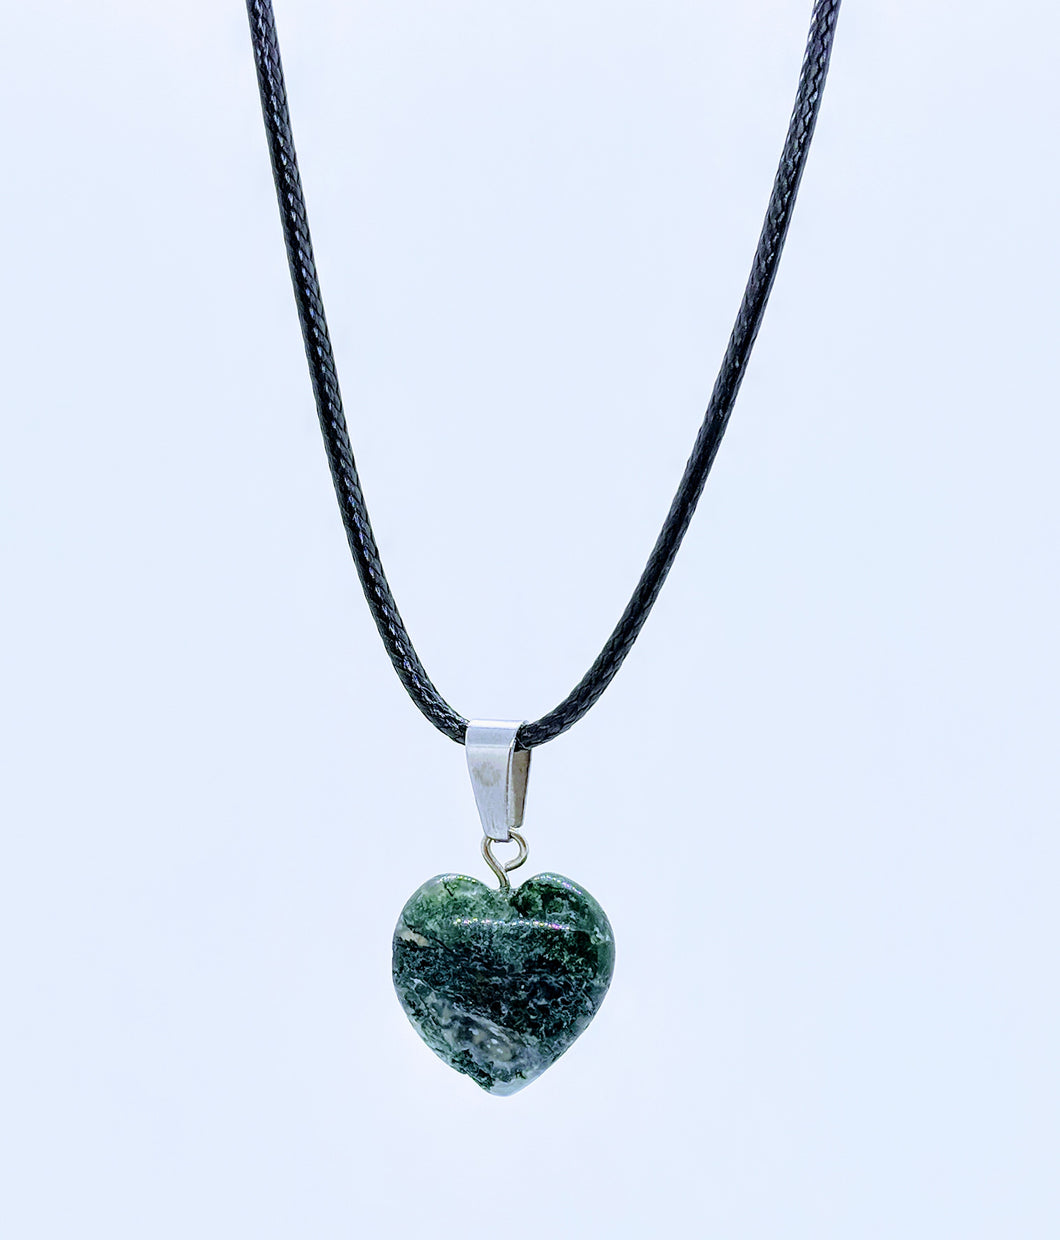 Heart Pendant Necklace ~ Green Earth